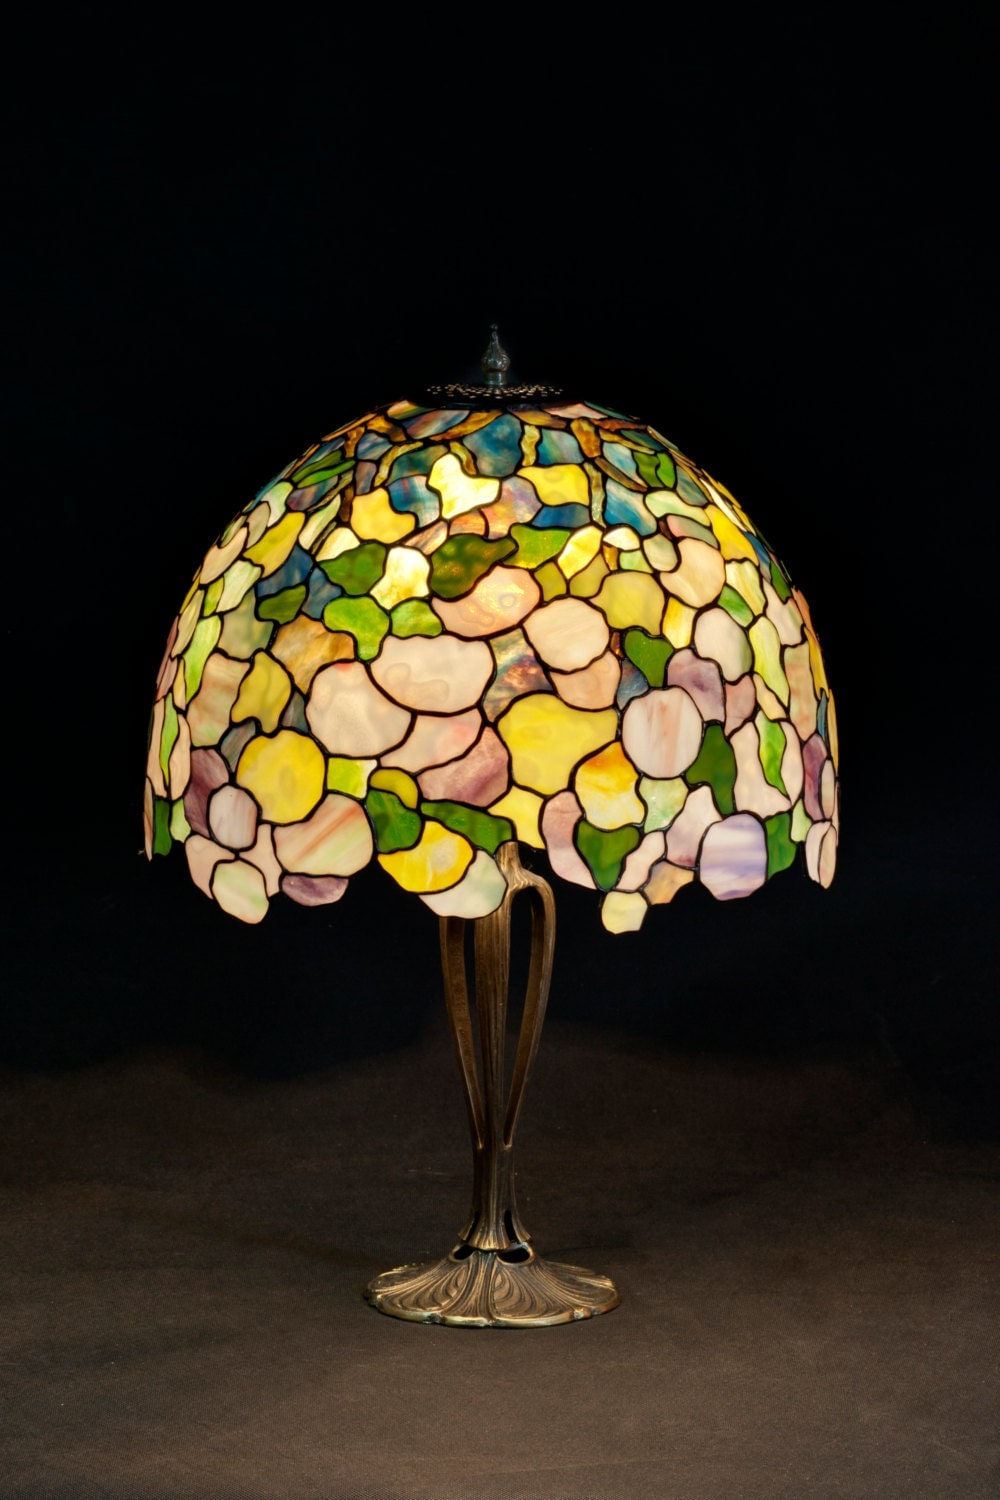 Office Lamp Table Lamp Stained Glass Shade Bedside Lamp Lamp Stand Stained Glass Light Standing Lamp Home Decor Stained Glass Art